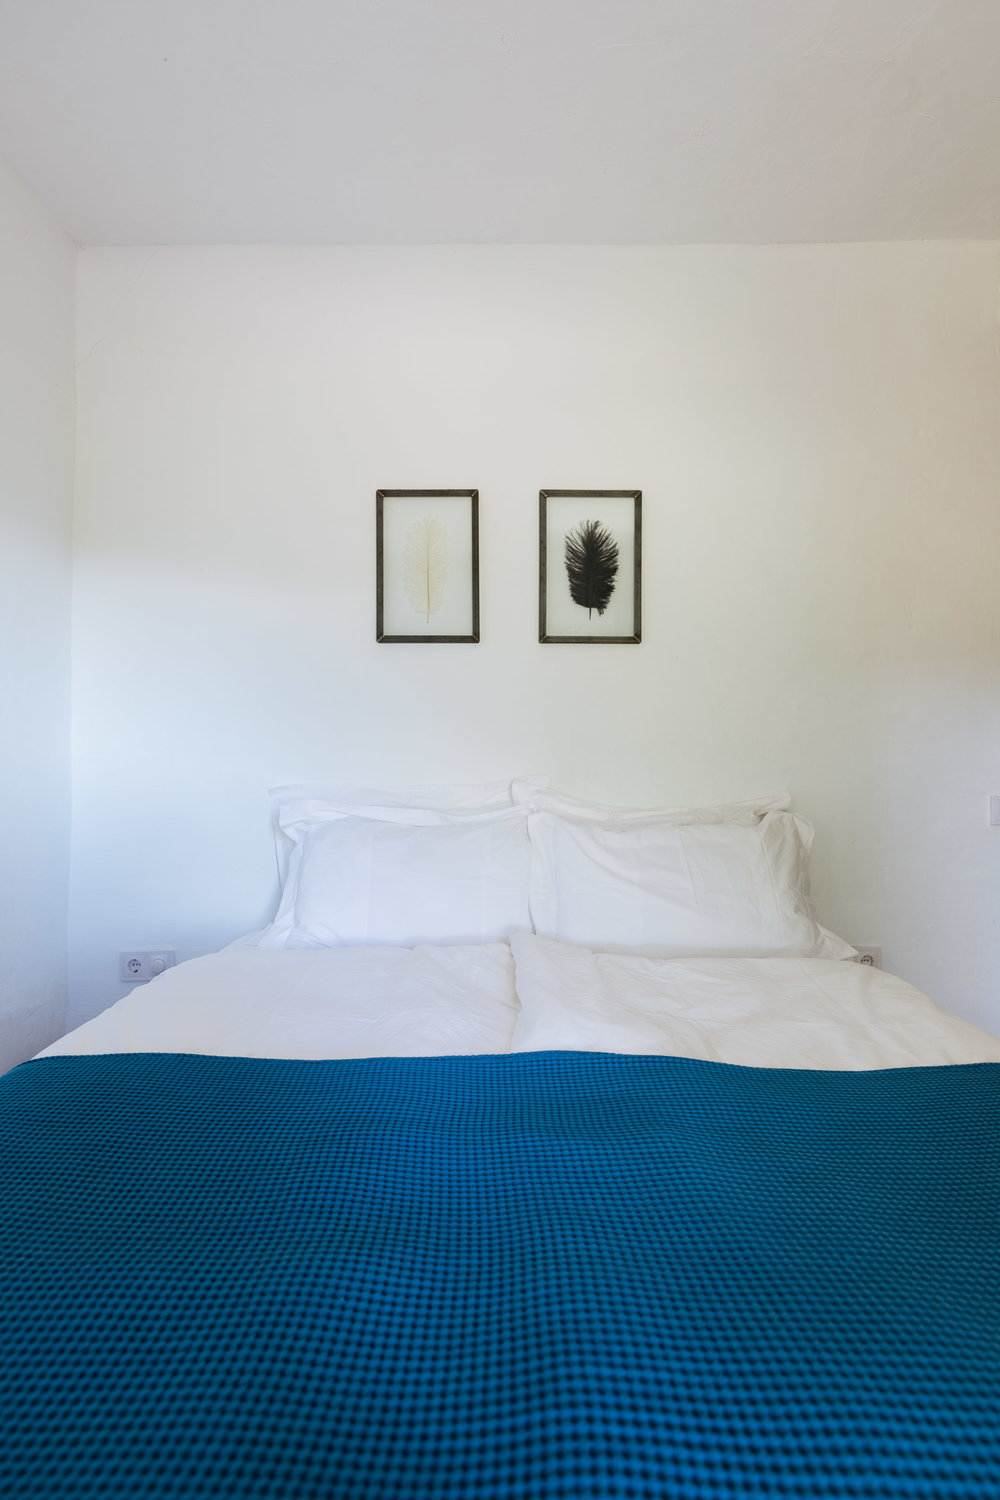 Ibiza_Campo_Loft_interior_architecture_photography_On_a_hazy_morning_Amsterdam242.jpg